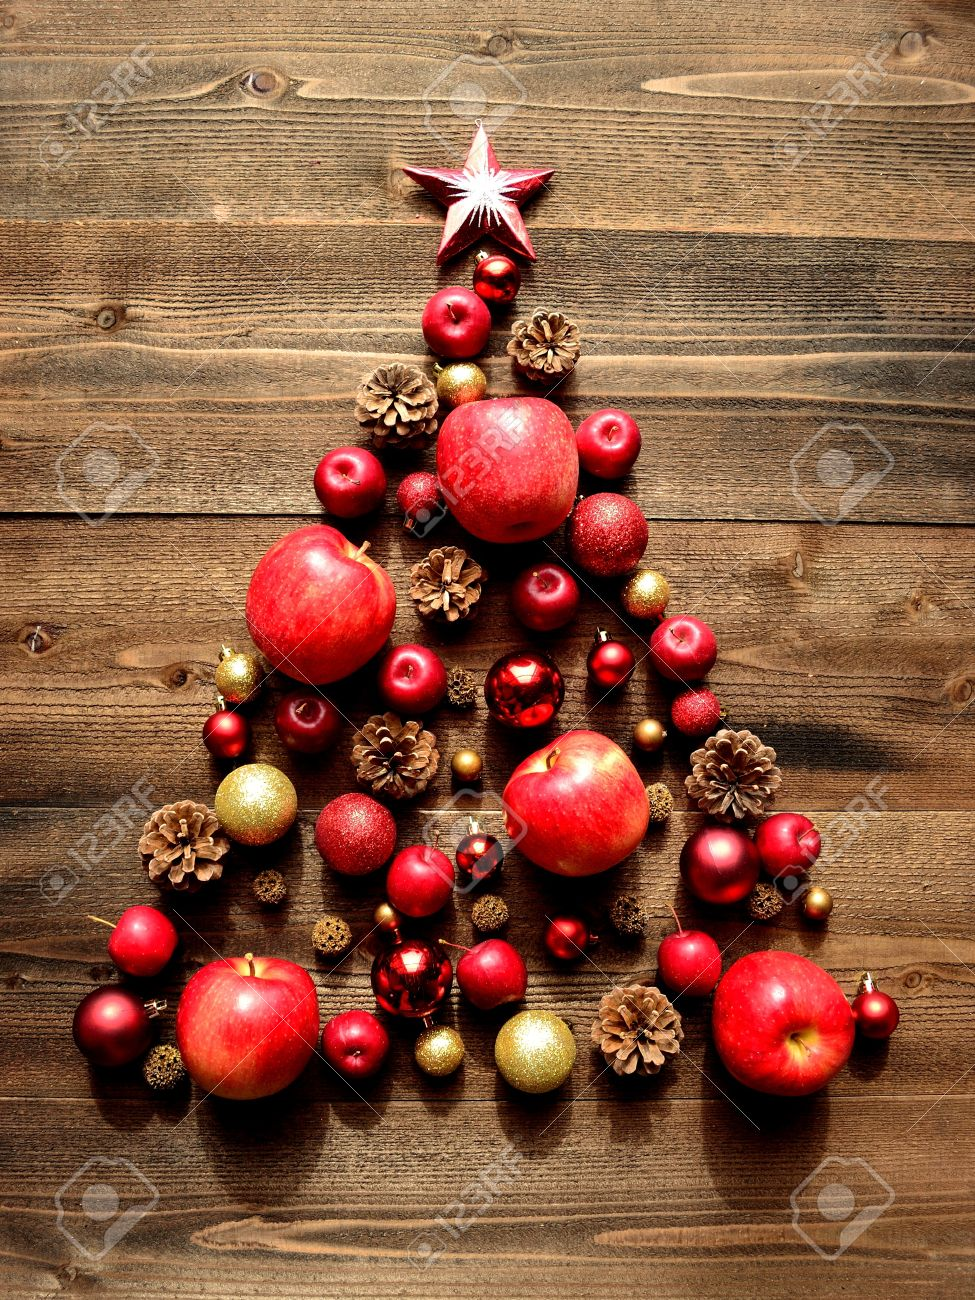 christmas tree of red apples stock photo picture and royalty free